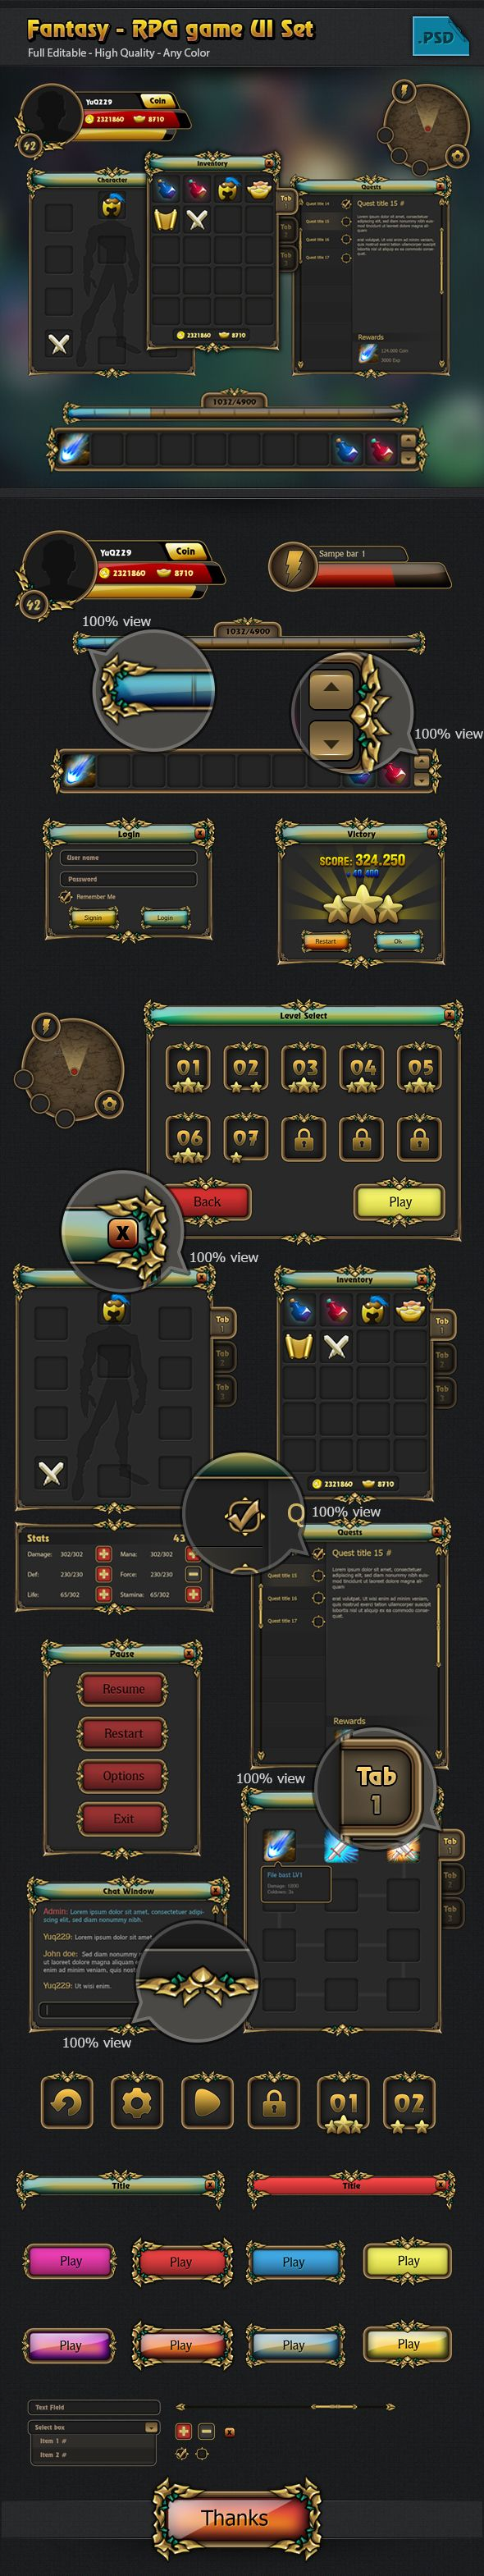 RPG game Gui set on Behance